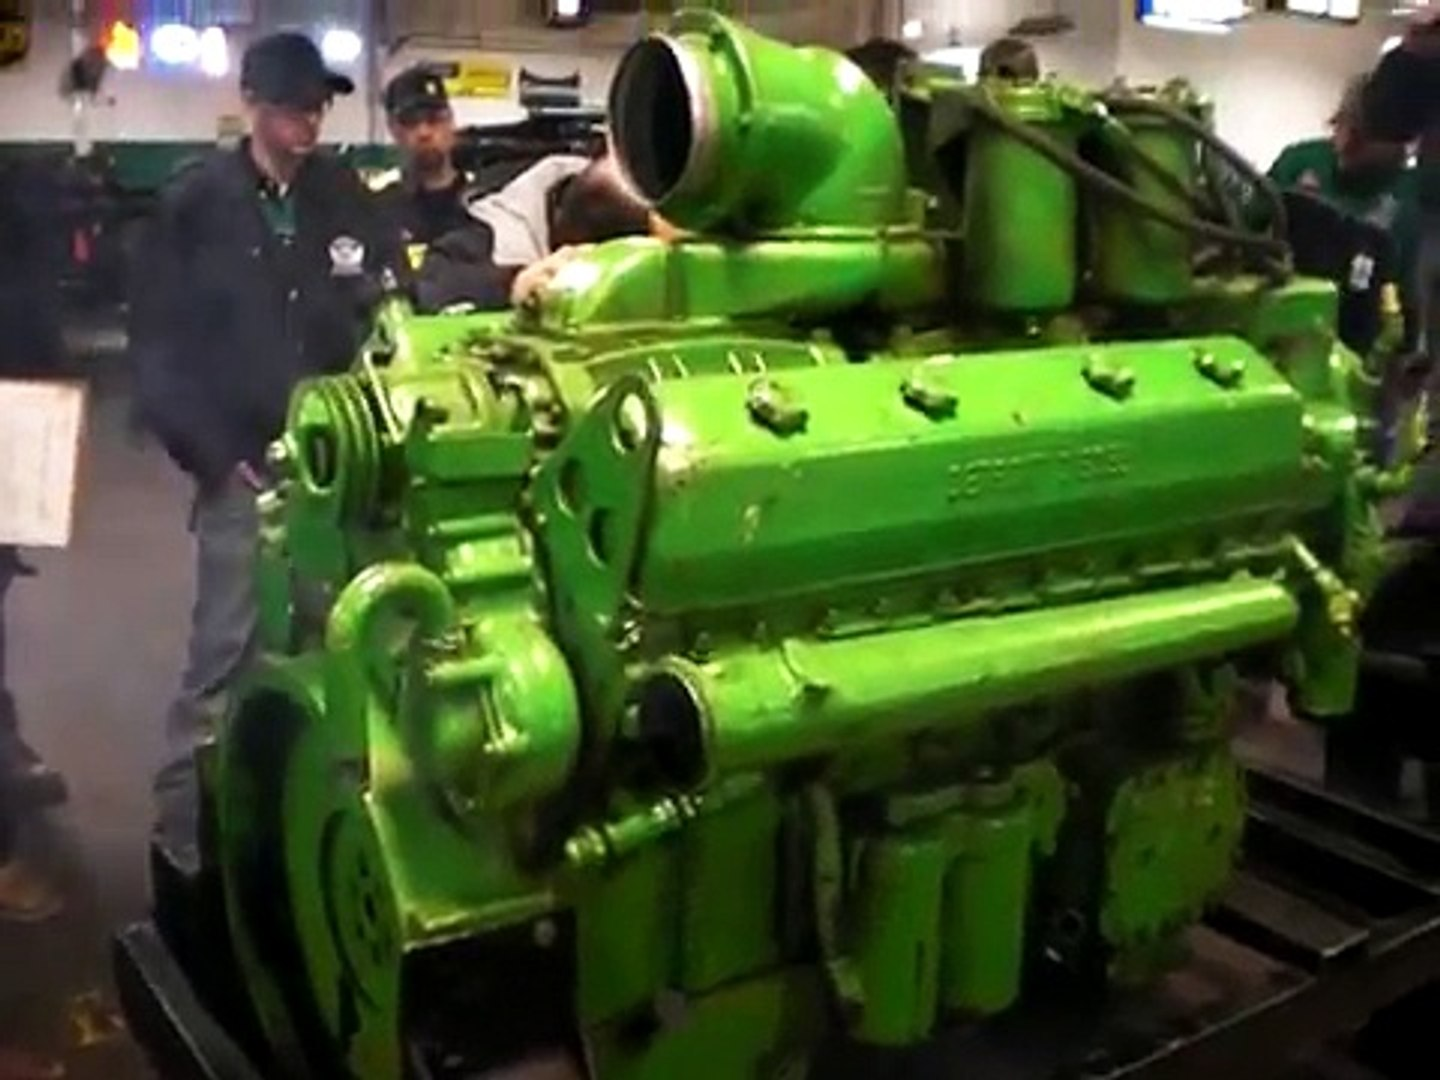 Amazing 2 Stroke V12 Detroit Diesel Repaired And Start Up Video Dailymotion